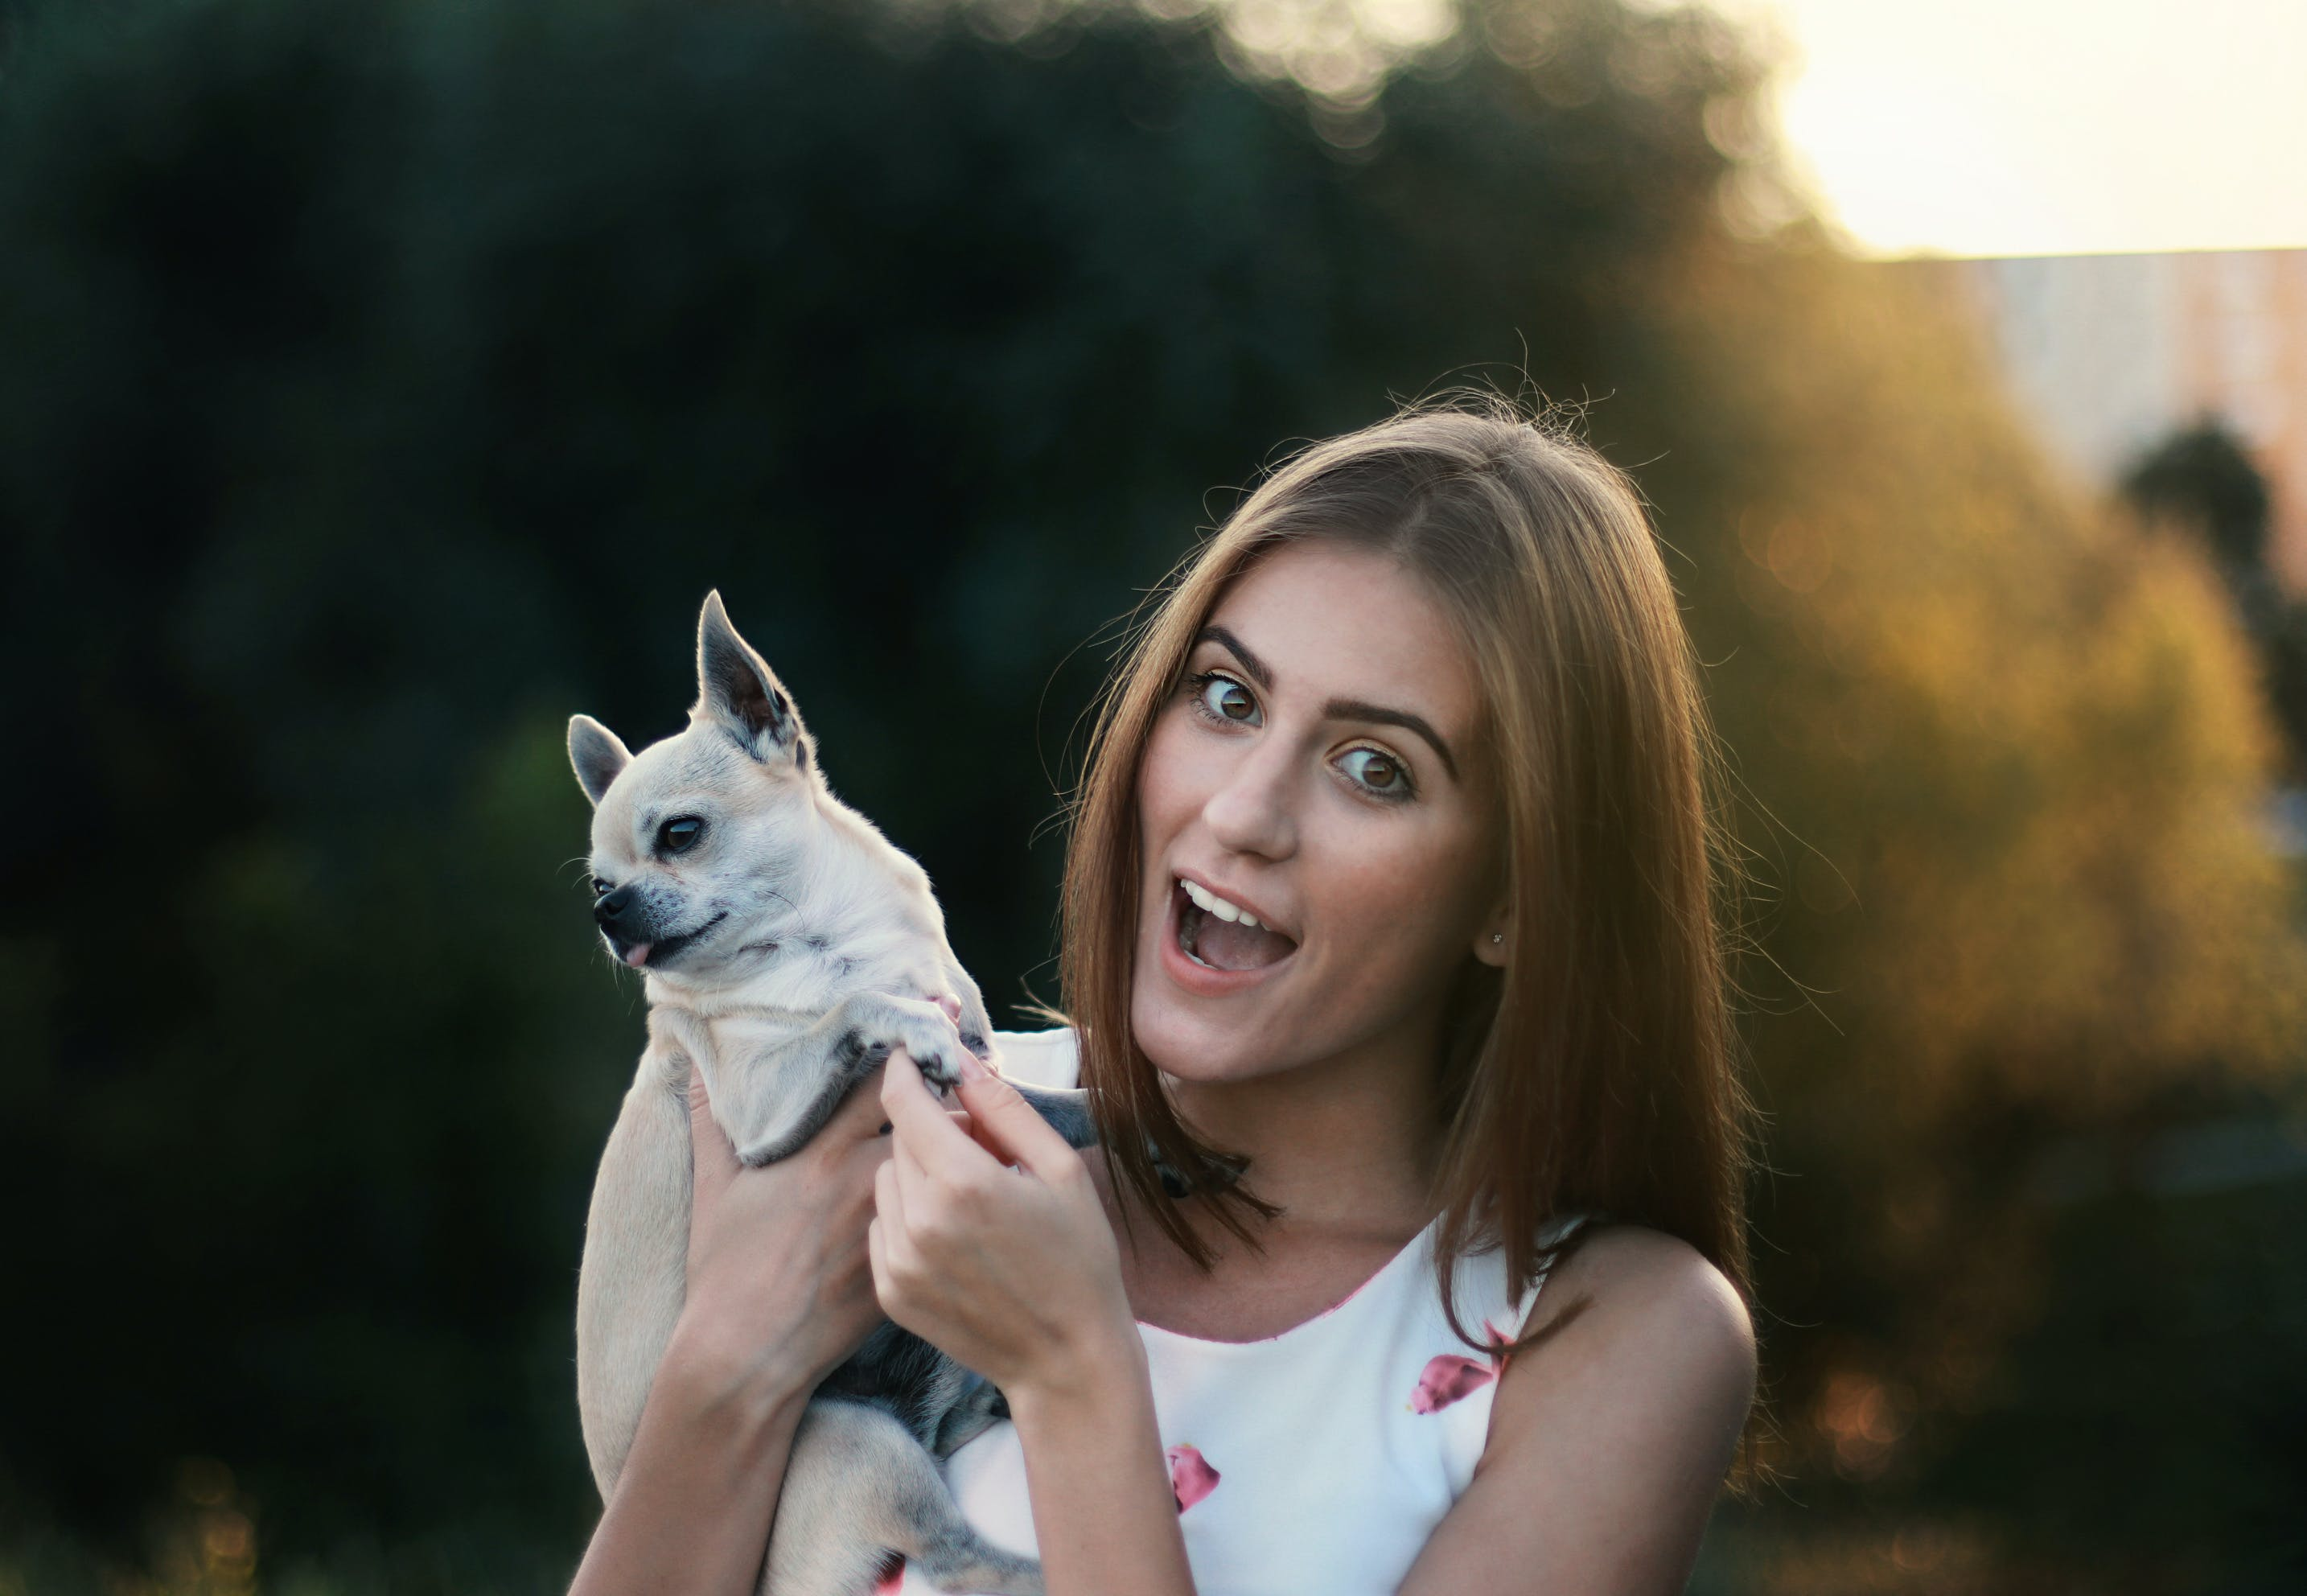 animal lover, beautiful girl, blurred background